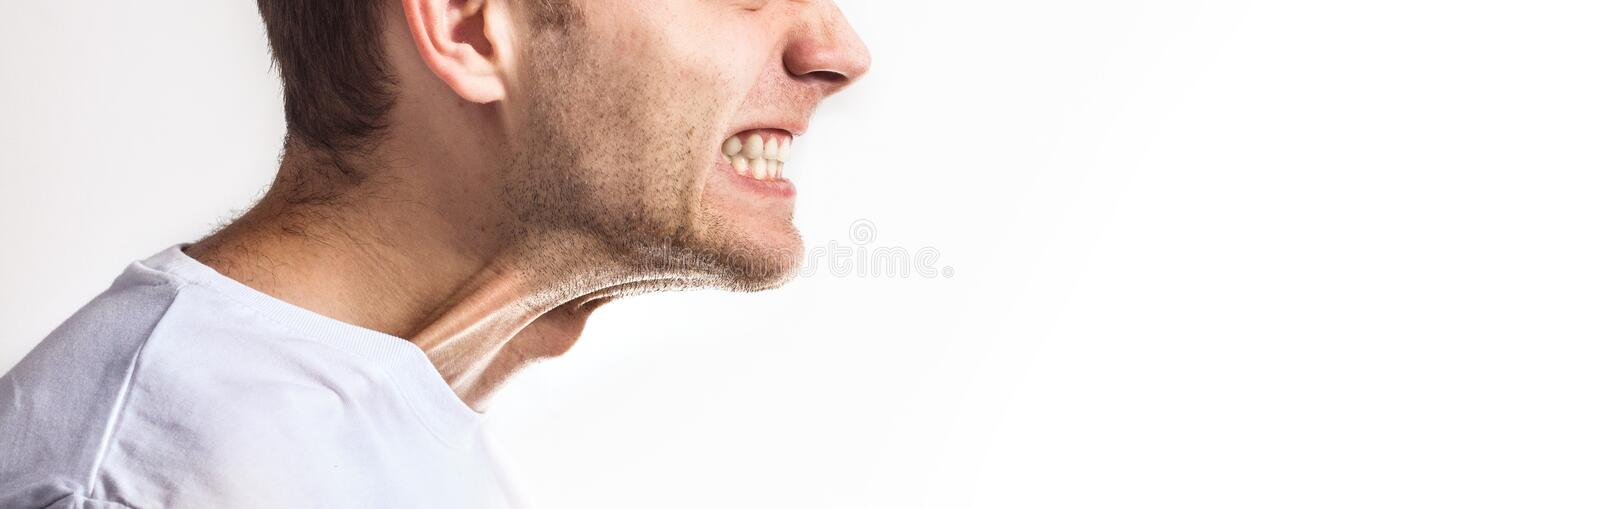 Man with clenched teeth on white background, angry grin, toothache on white background royalty free stock image